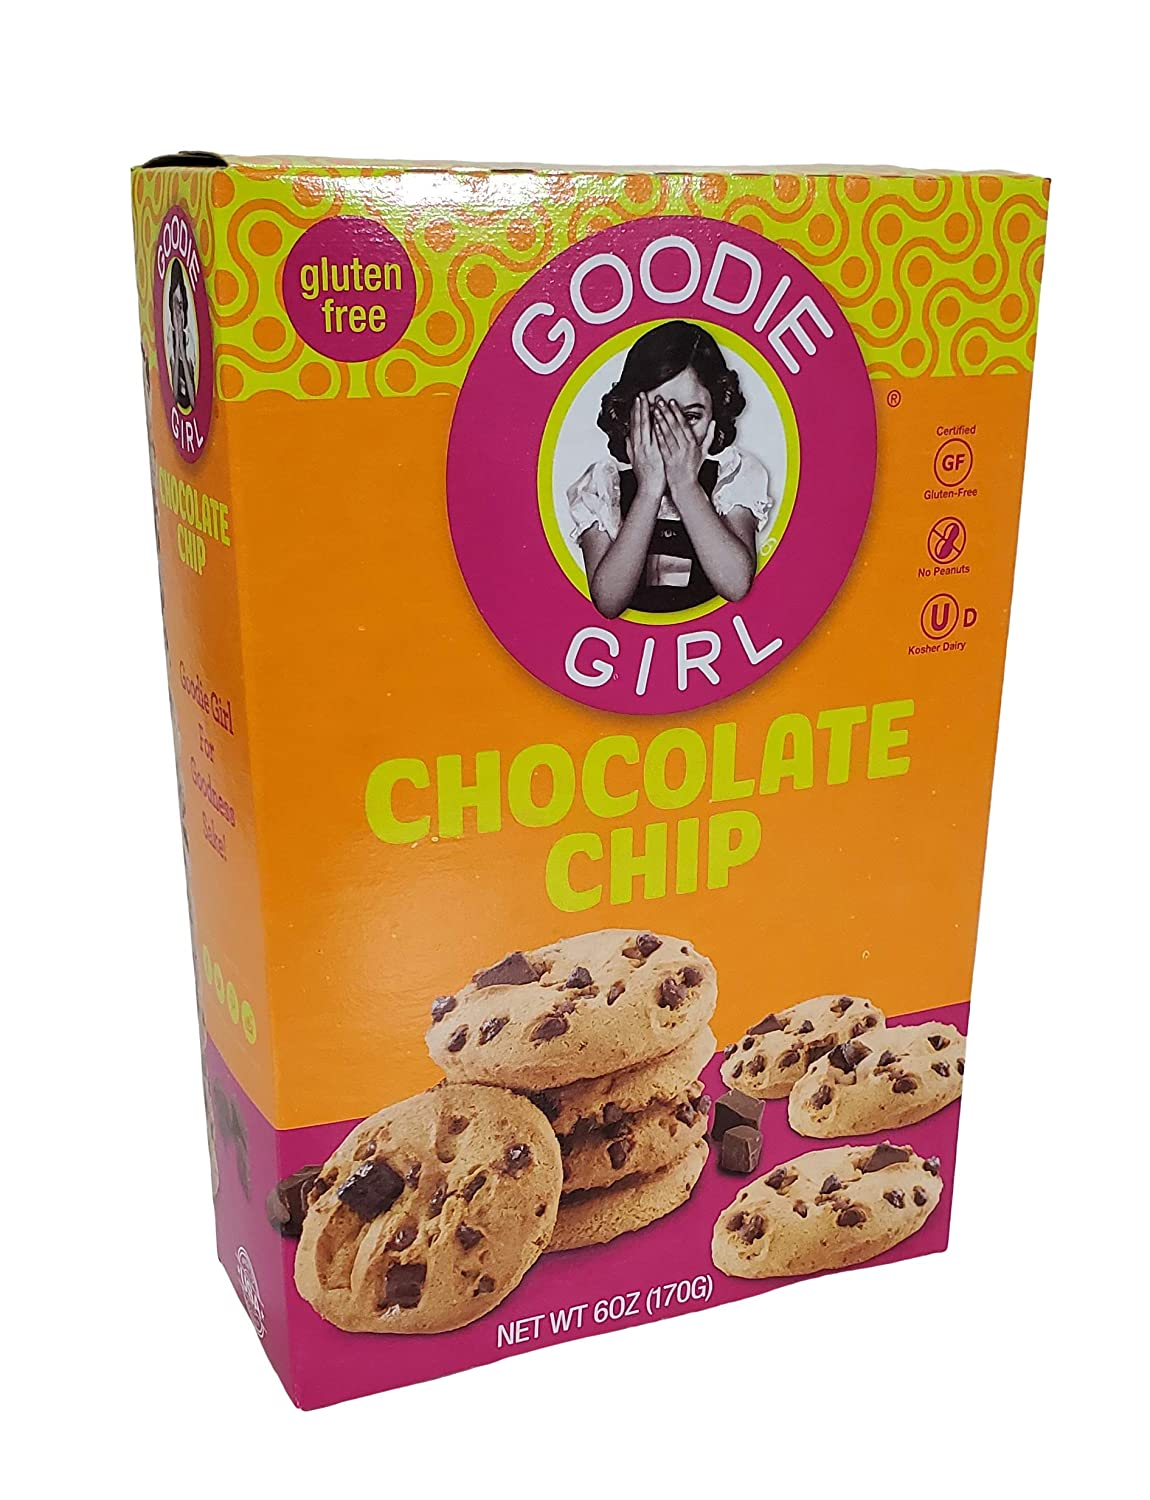 Goodie Girl Gluten Free Cookies 2 Boxes (Chocolate Chip)